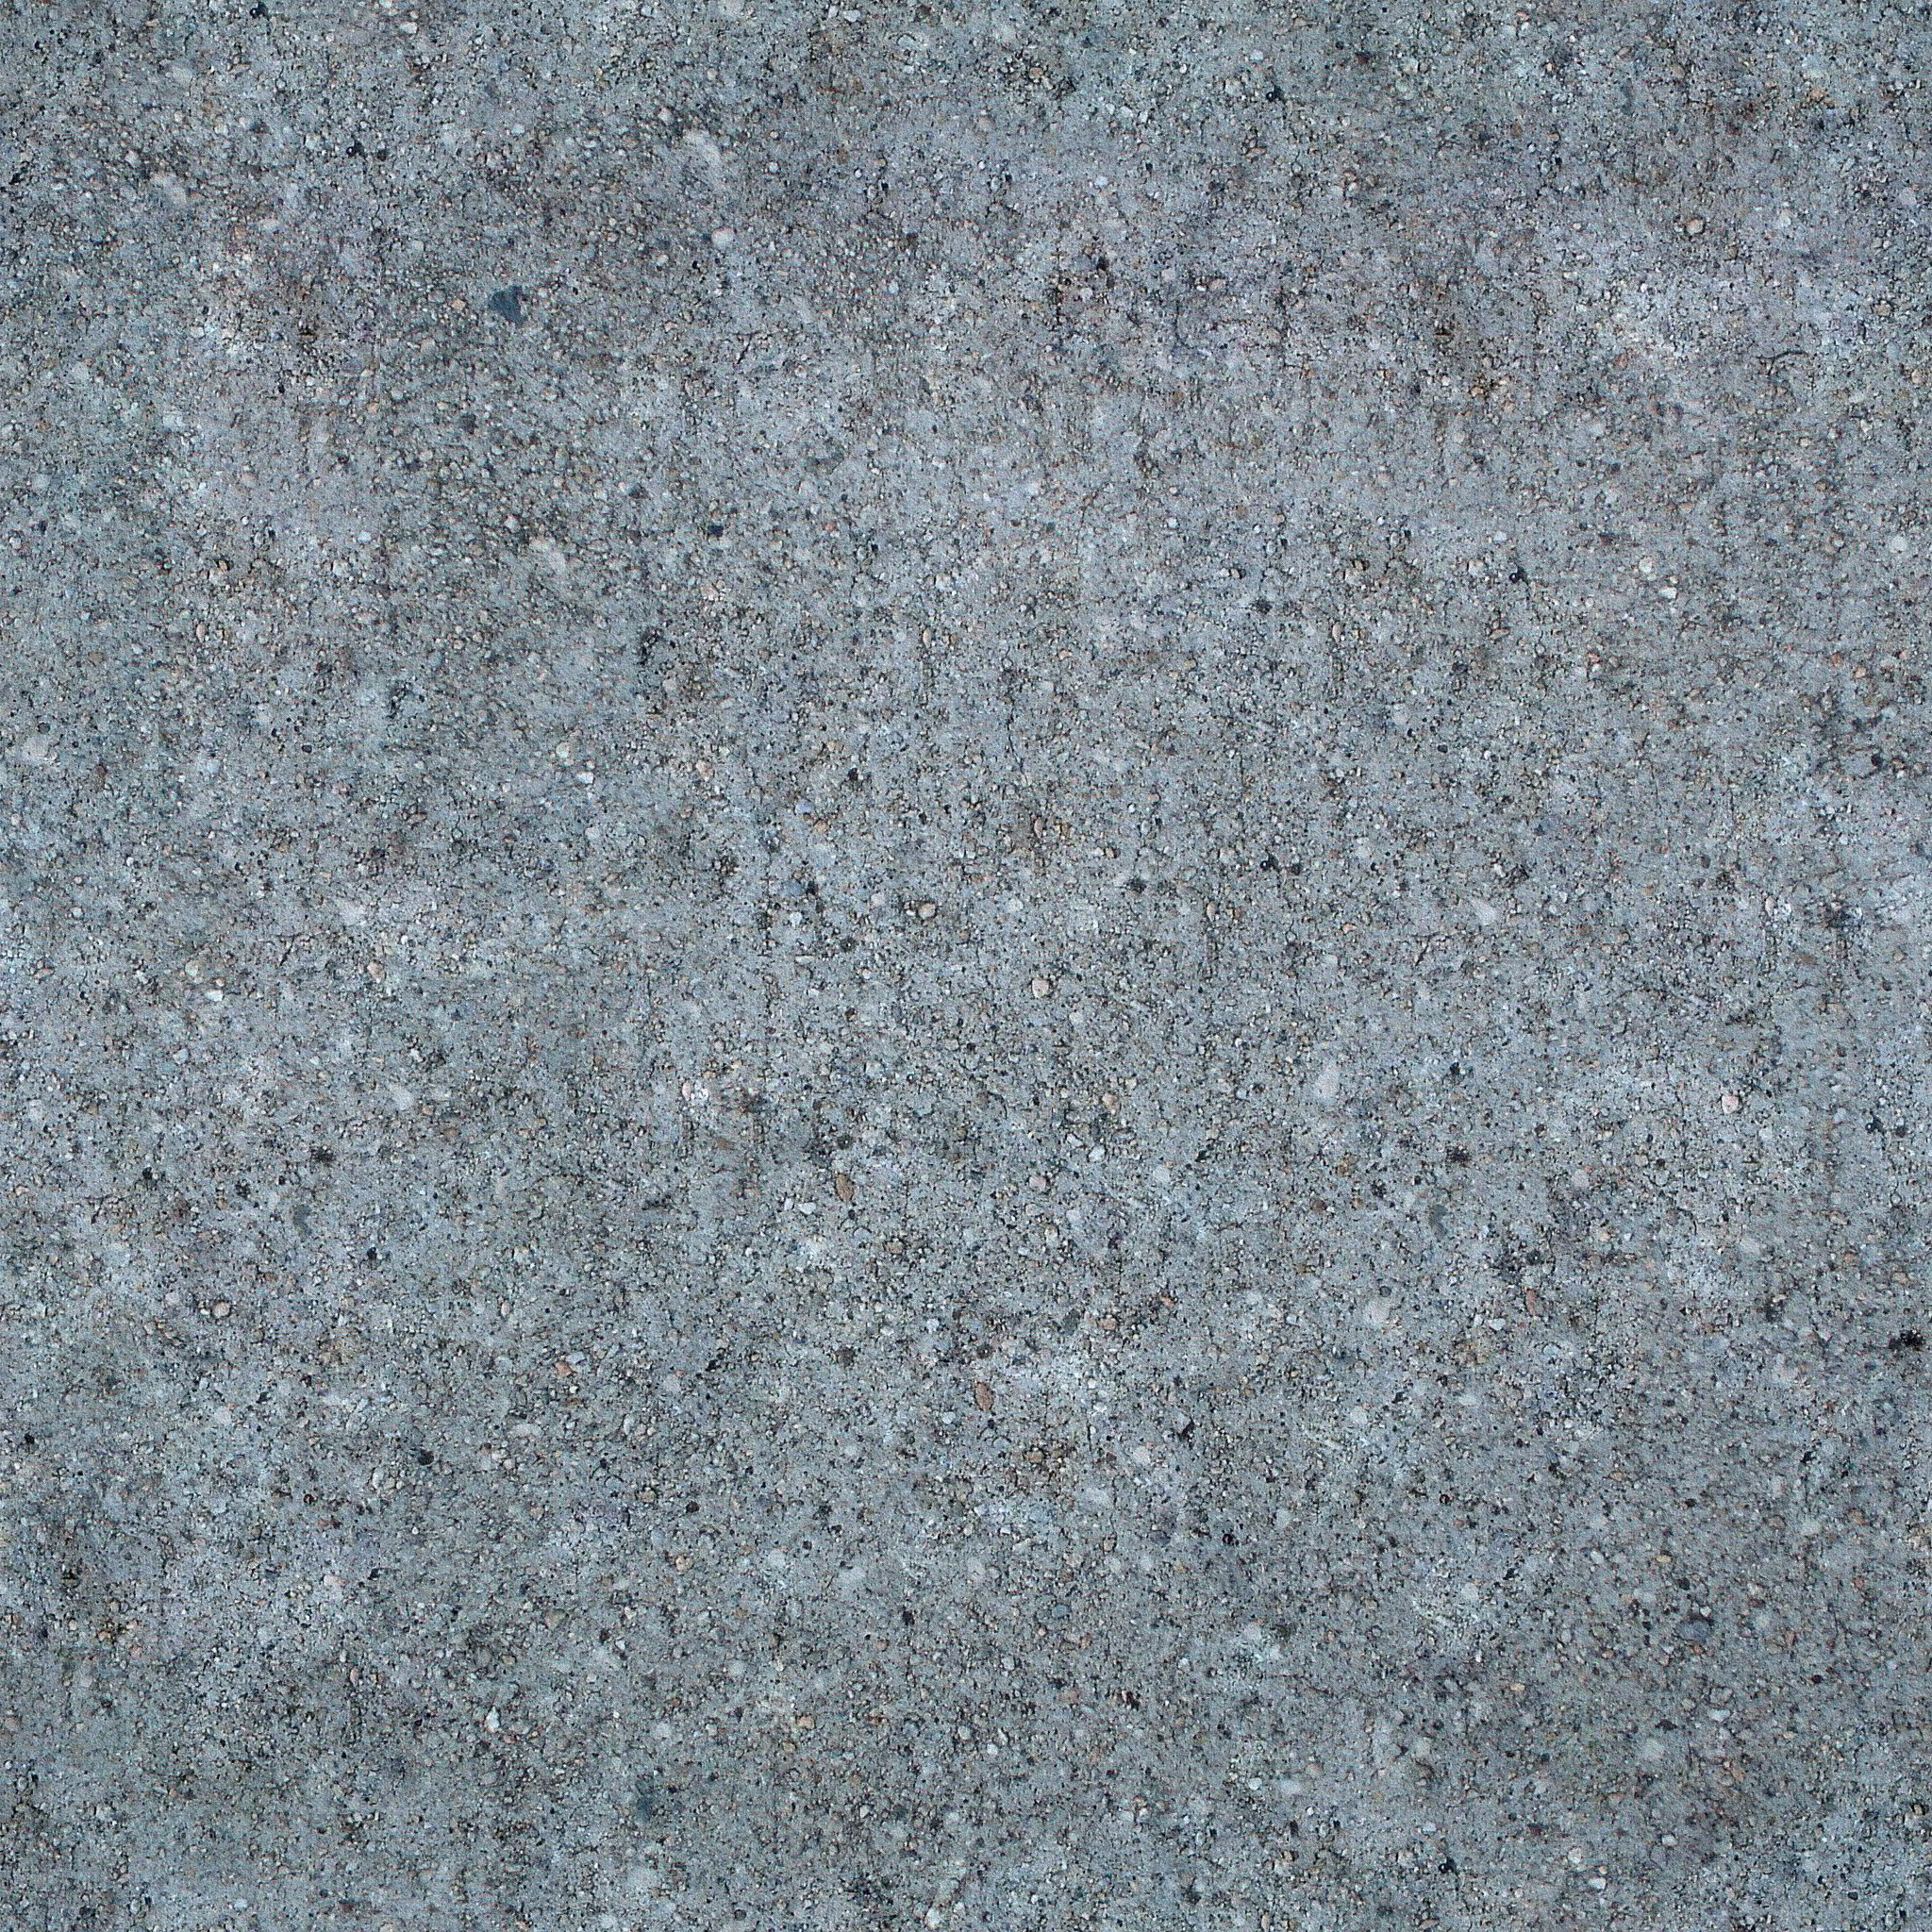 Paved texture #3 - Seamless - 2K